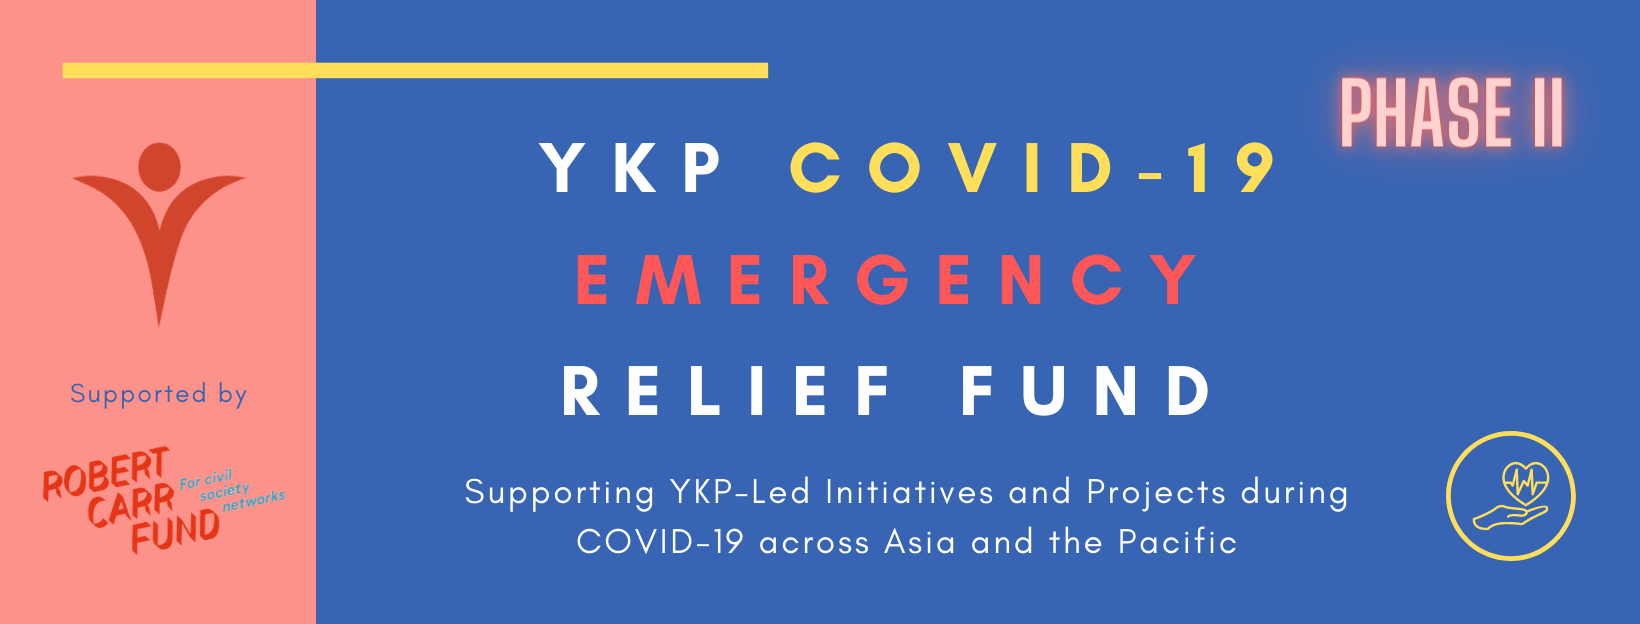 Ykp Covid 19 Emergency Relief Fund Phase Ii Youth Lead